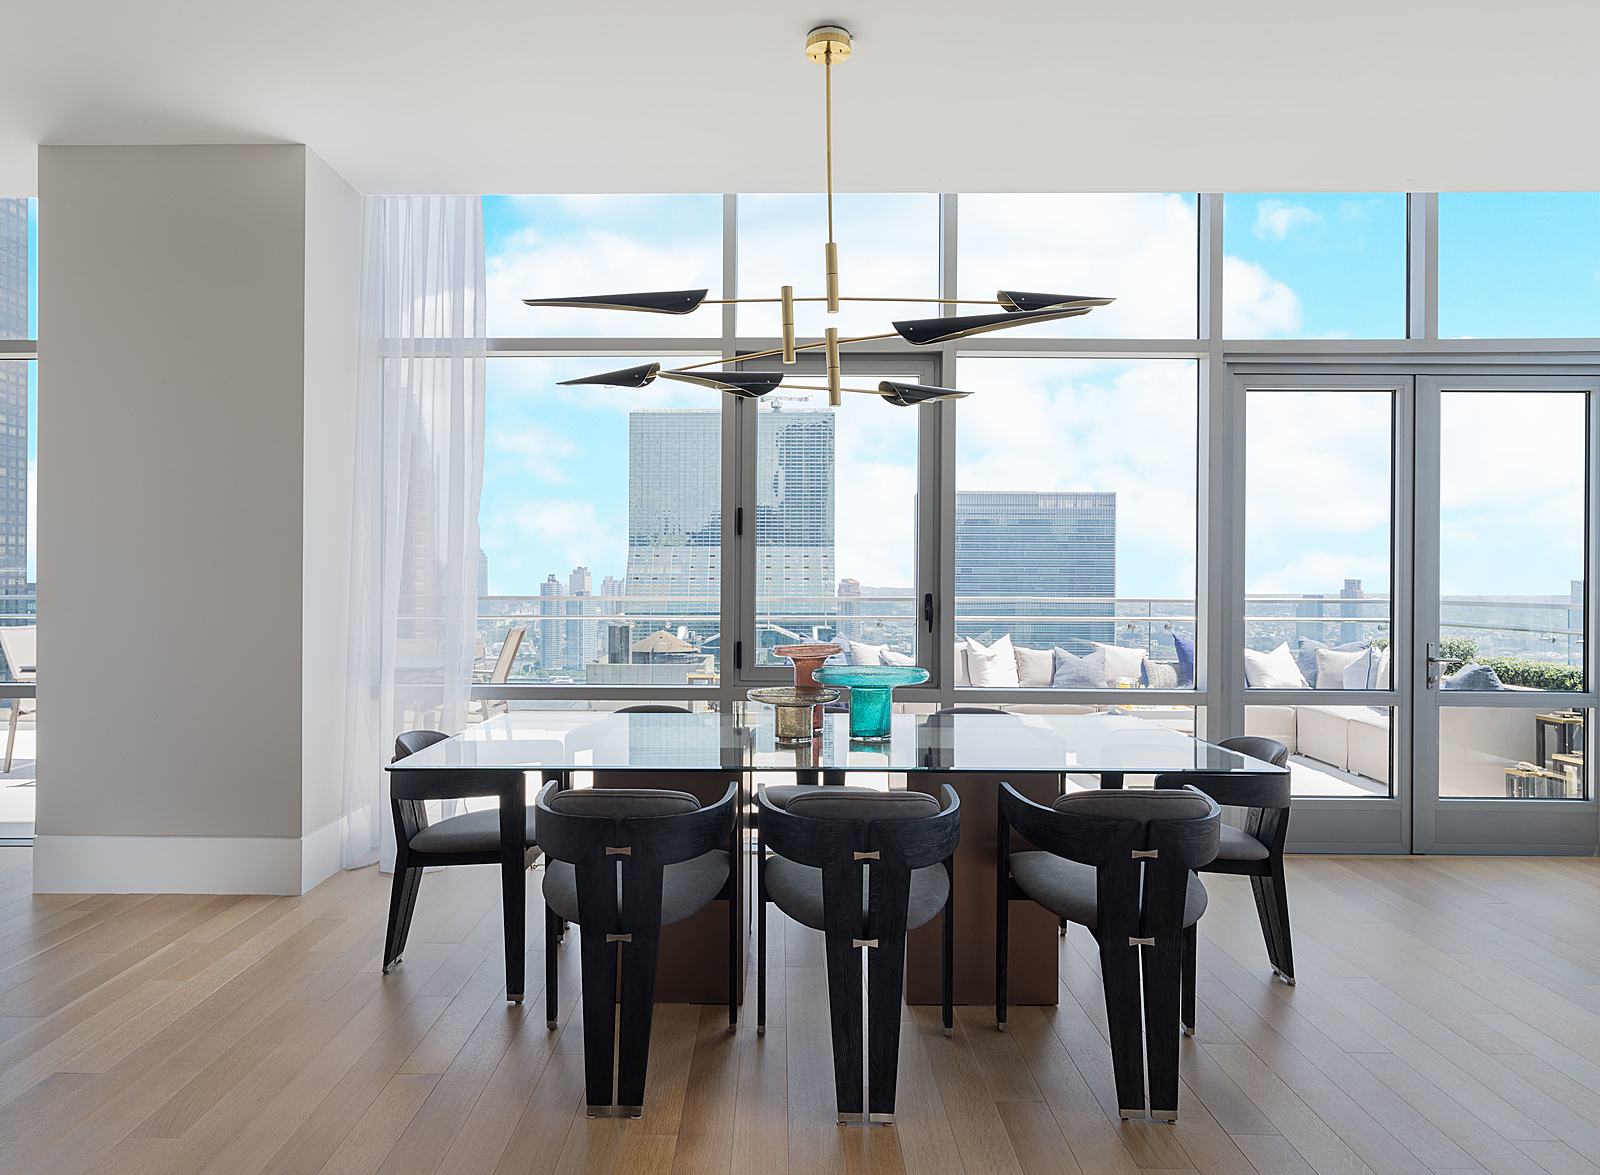 219East44thStreetPH-MidtownNewYork_Aaron_Ross_DouglasElliman_Photography_83045087_high_res